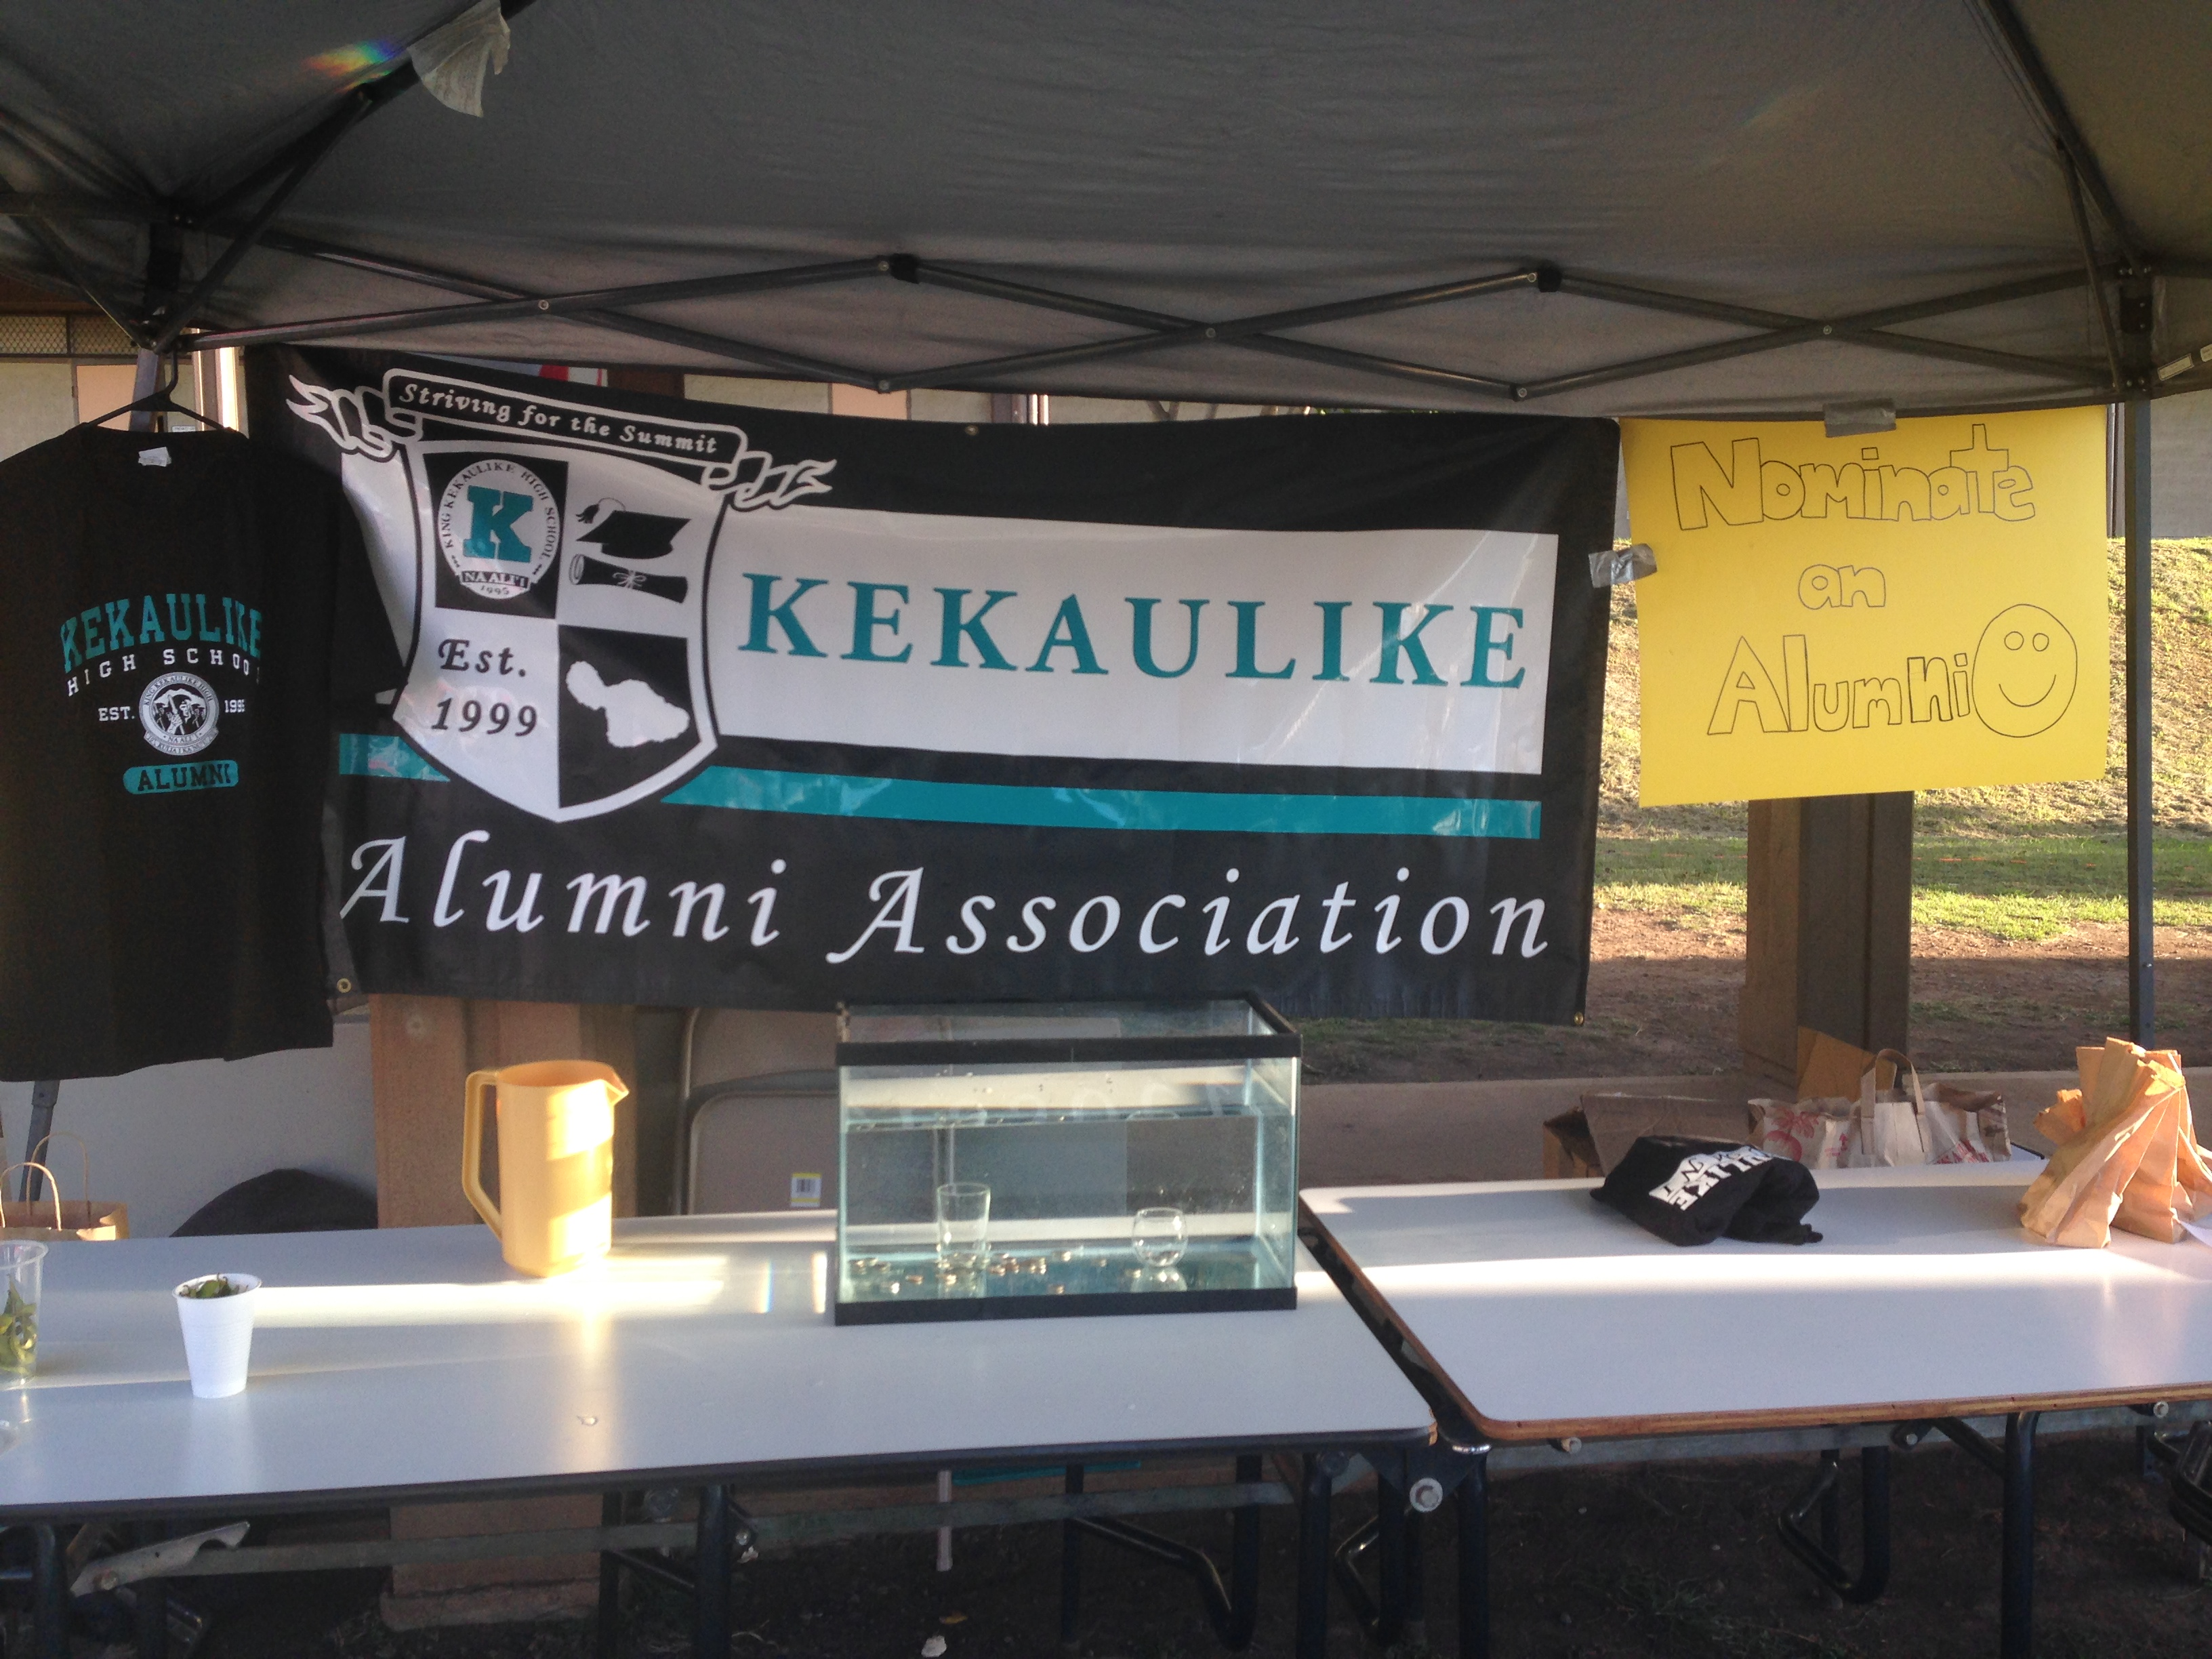 Alumni Association Booth at the Kekaulike Karnival.